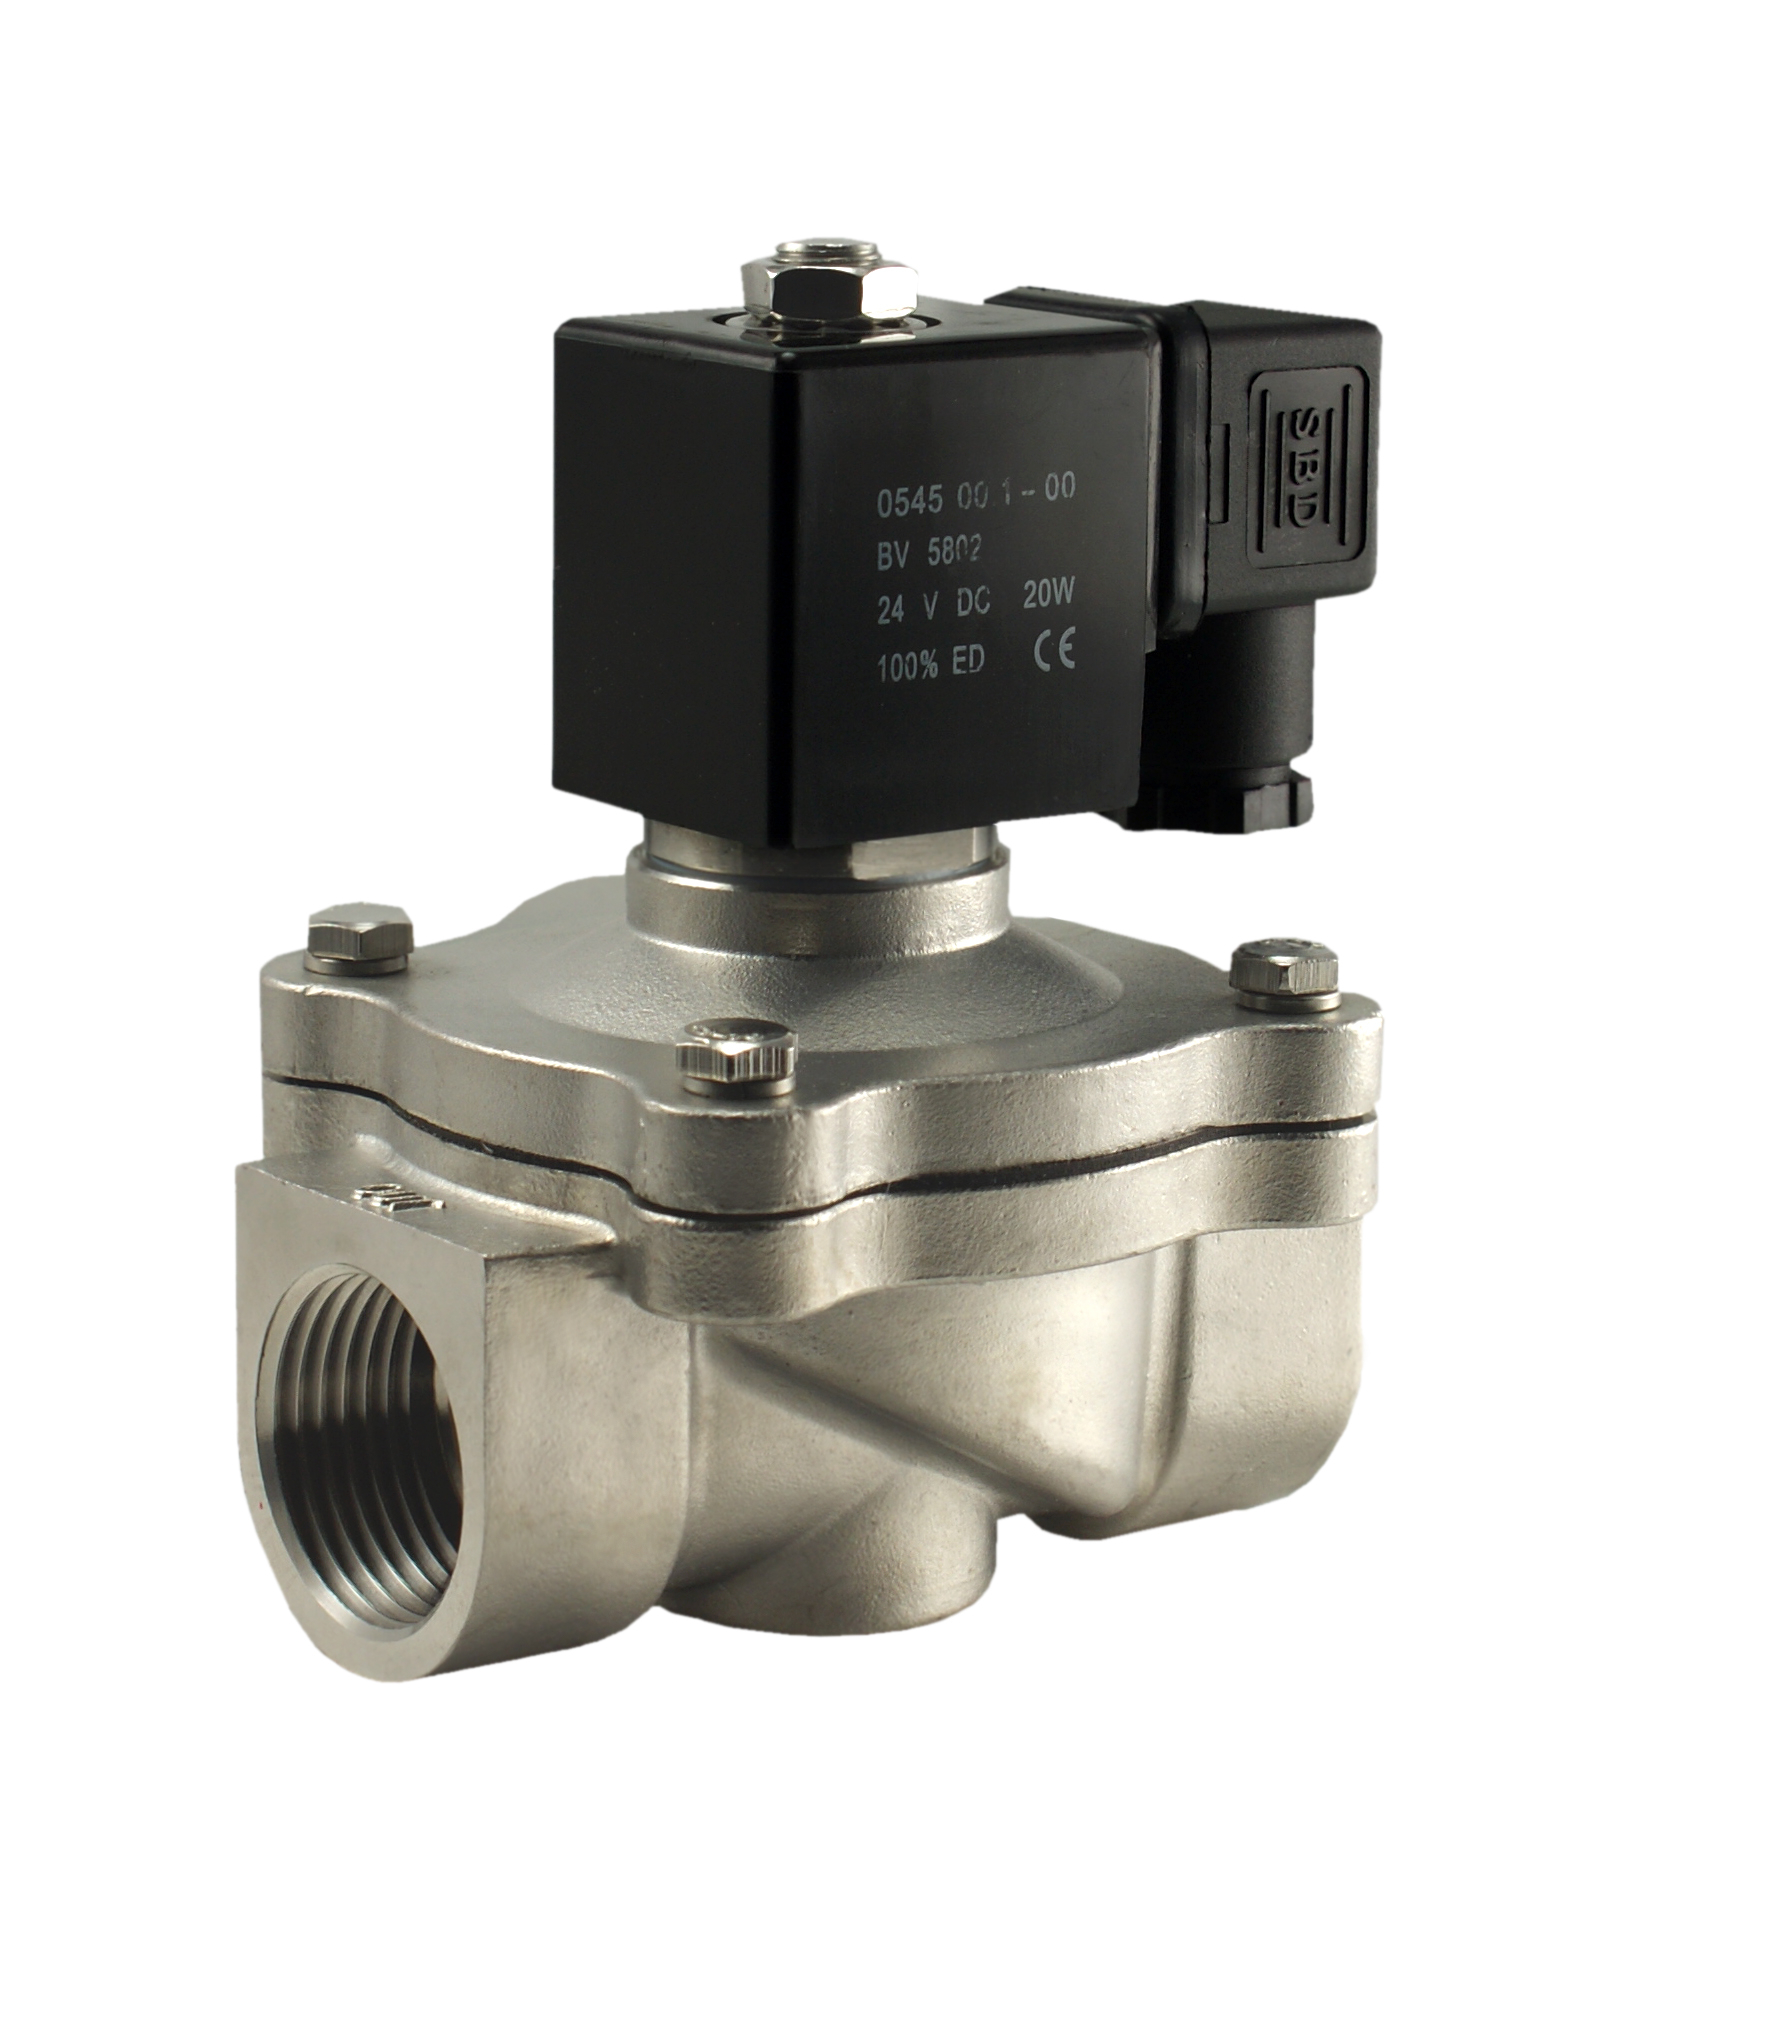 Hot water solenoid valve one inch electric valve ccuart Gallery